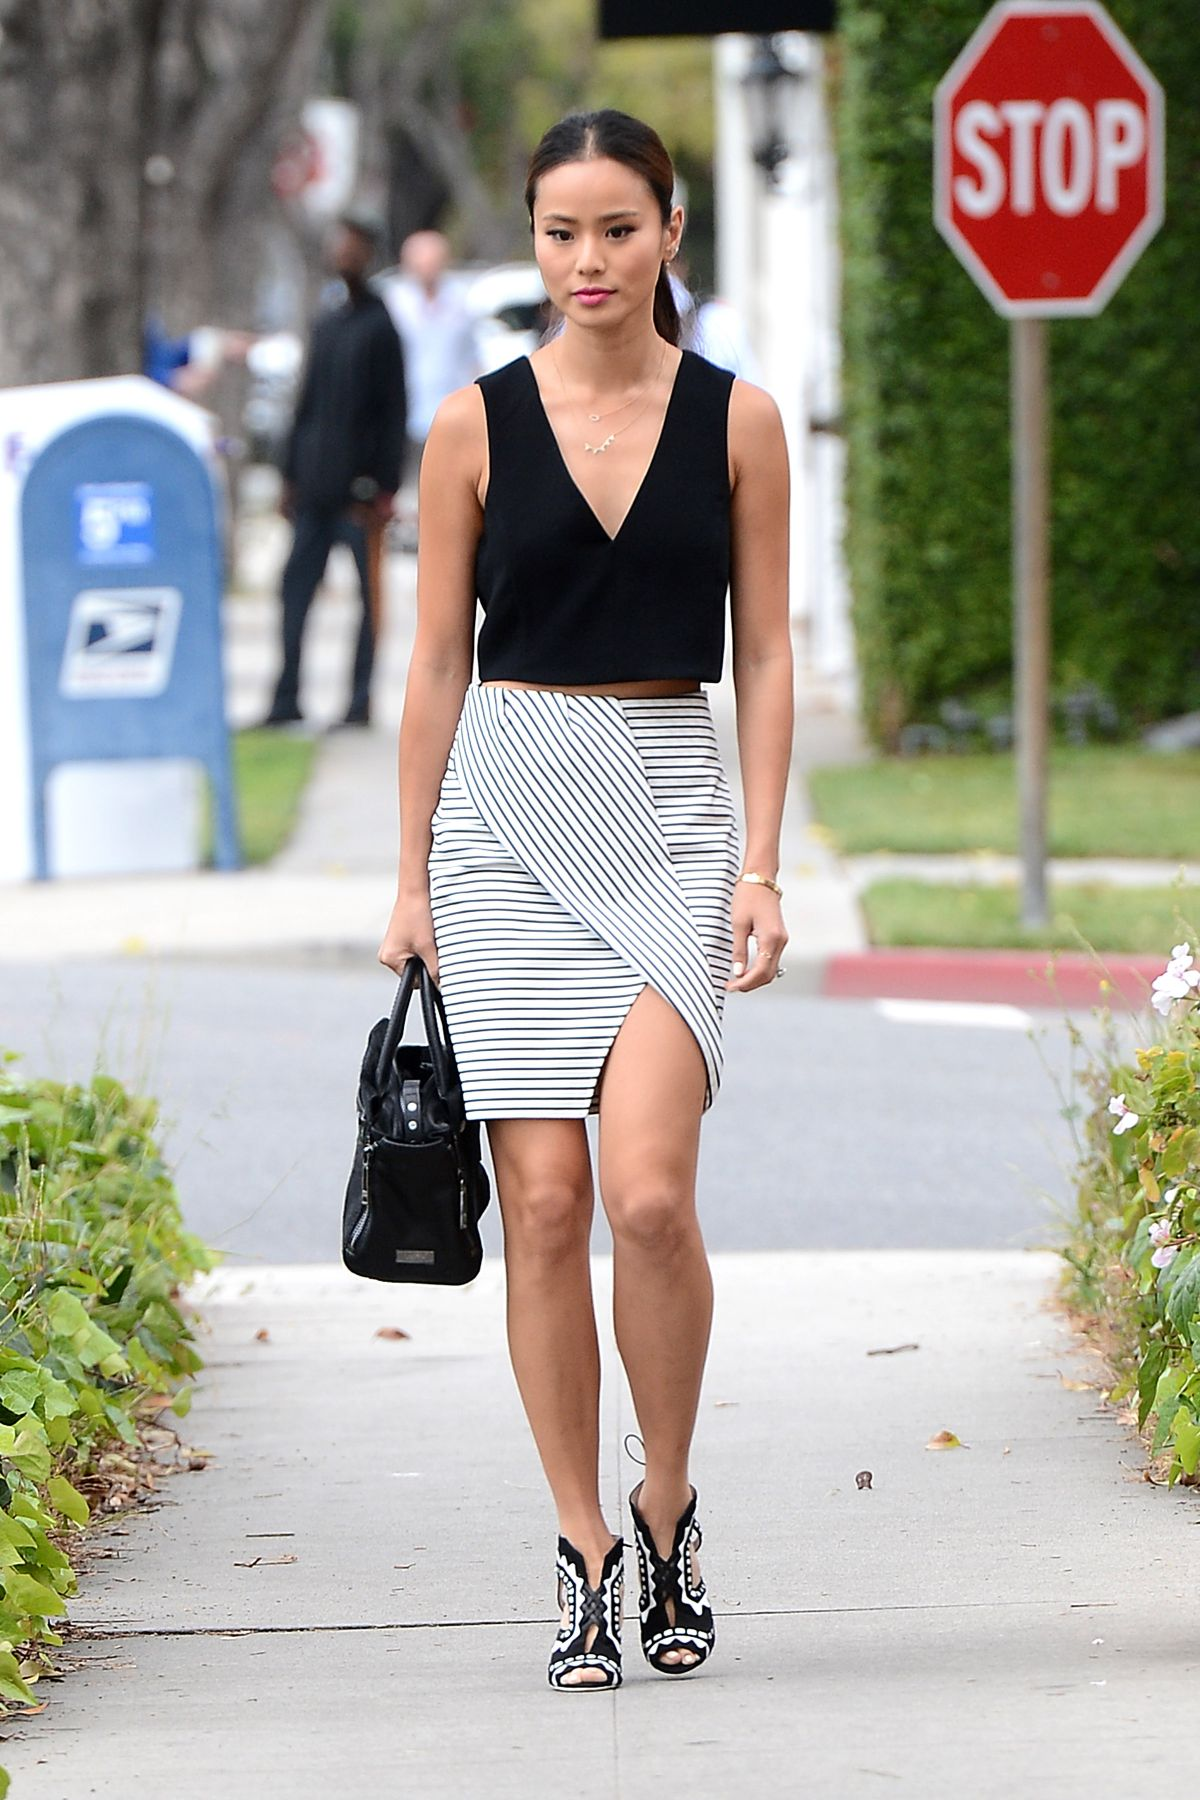 b878e9fe2e97 JAMIE CHUNG Out and About in Beverly Hills 04 23 2015 - HawtCelebs